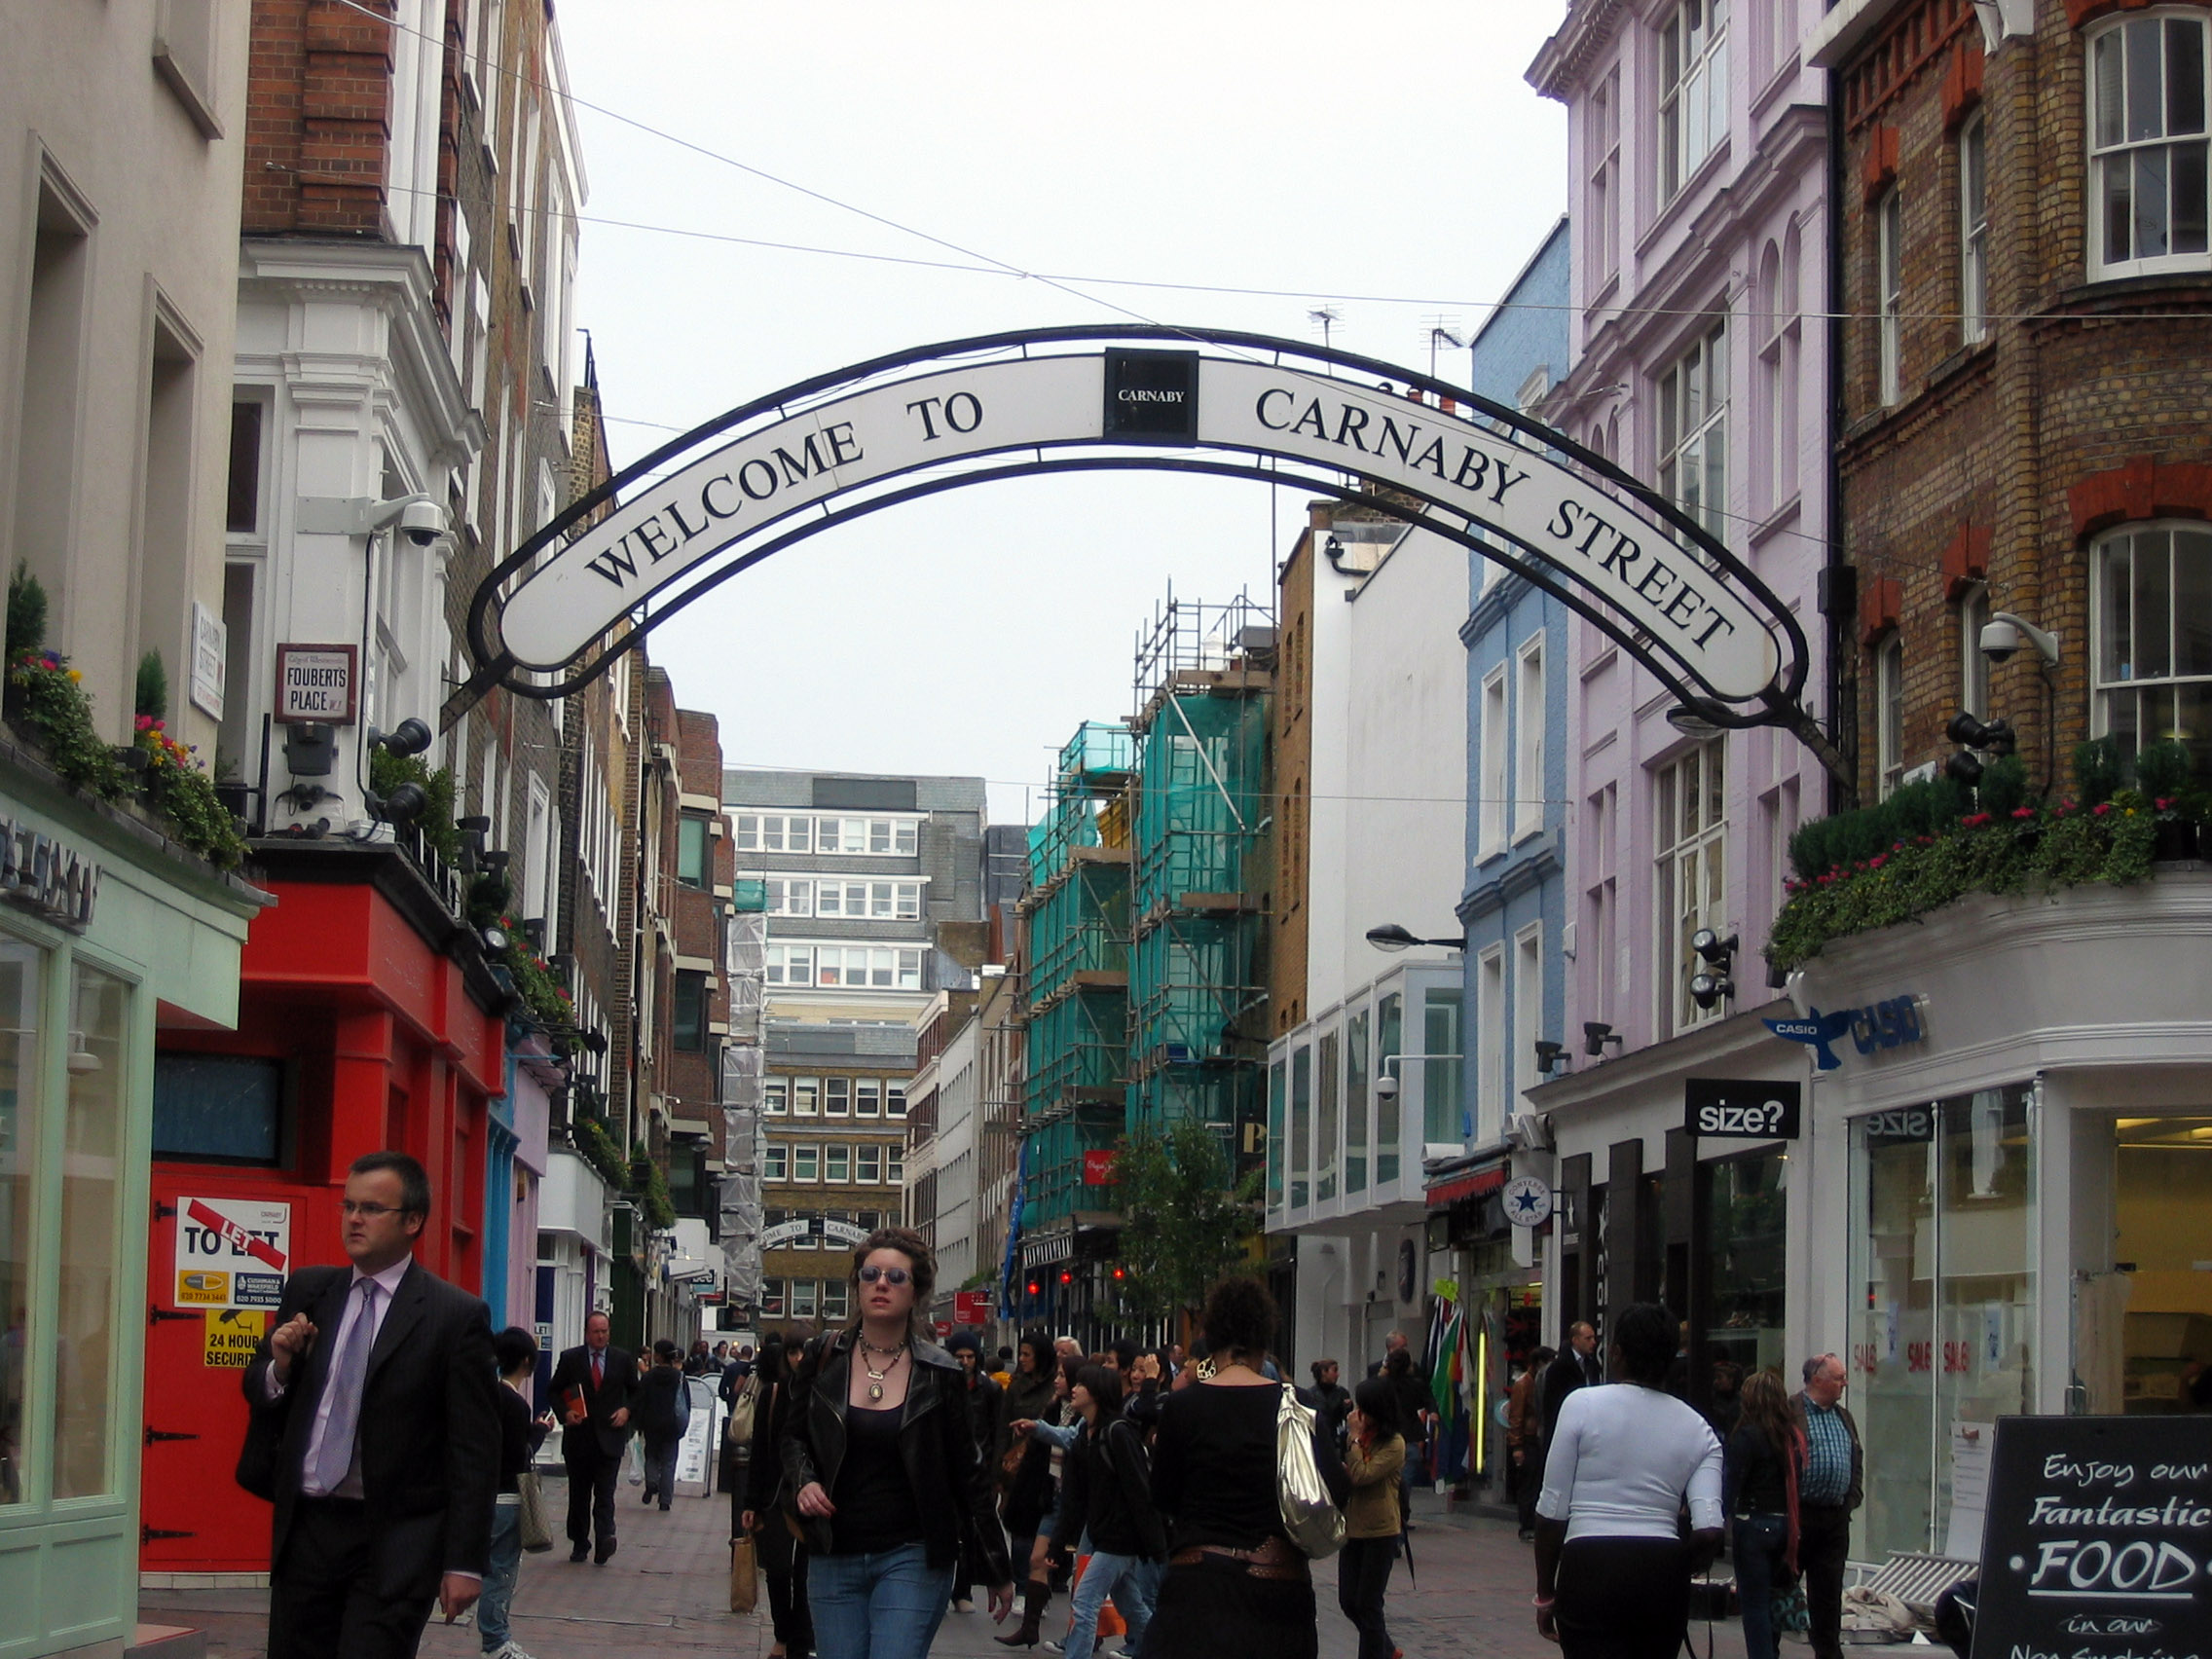 Carnaby-Street-London-Londres-MiGTrip